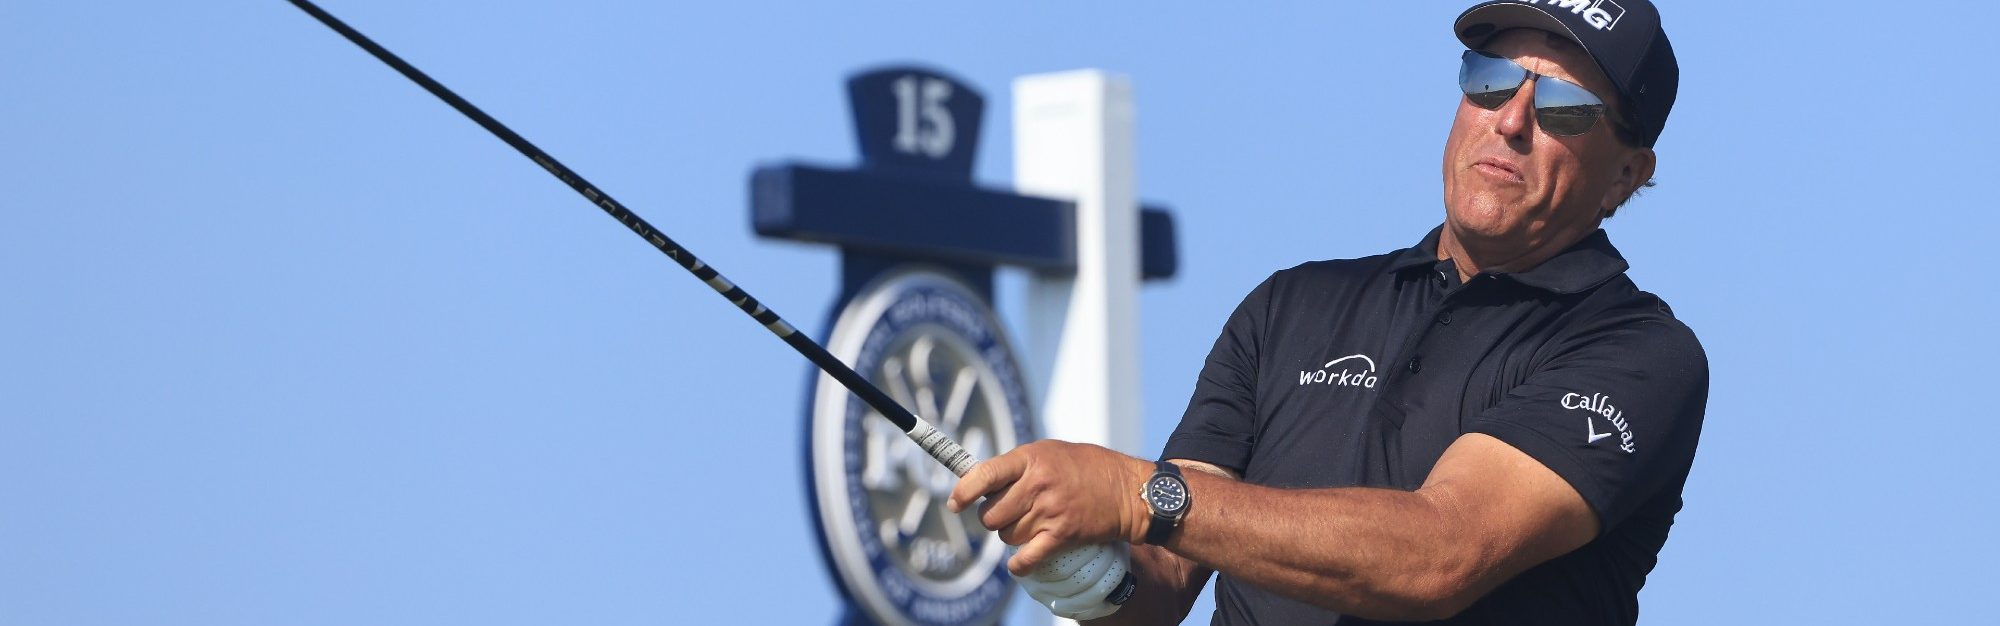 The oldest golfers to win a major championship